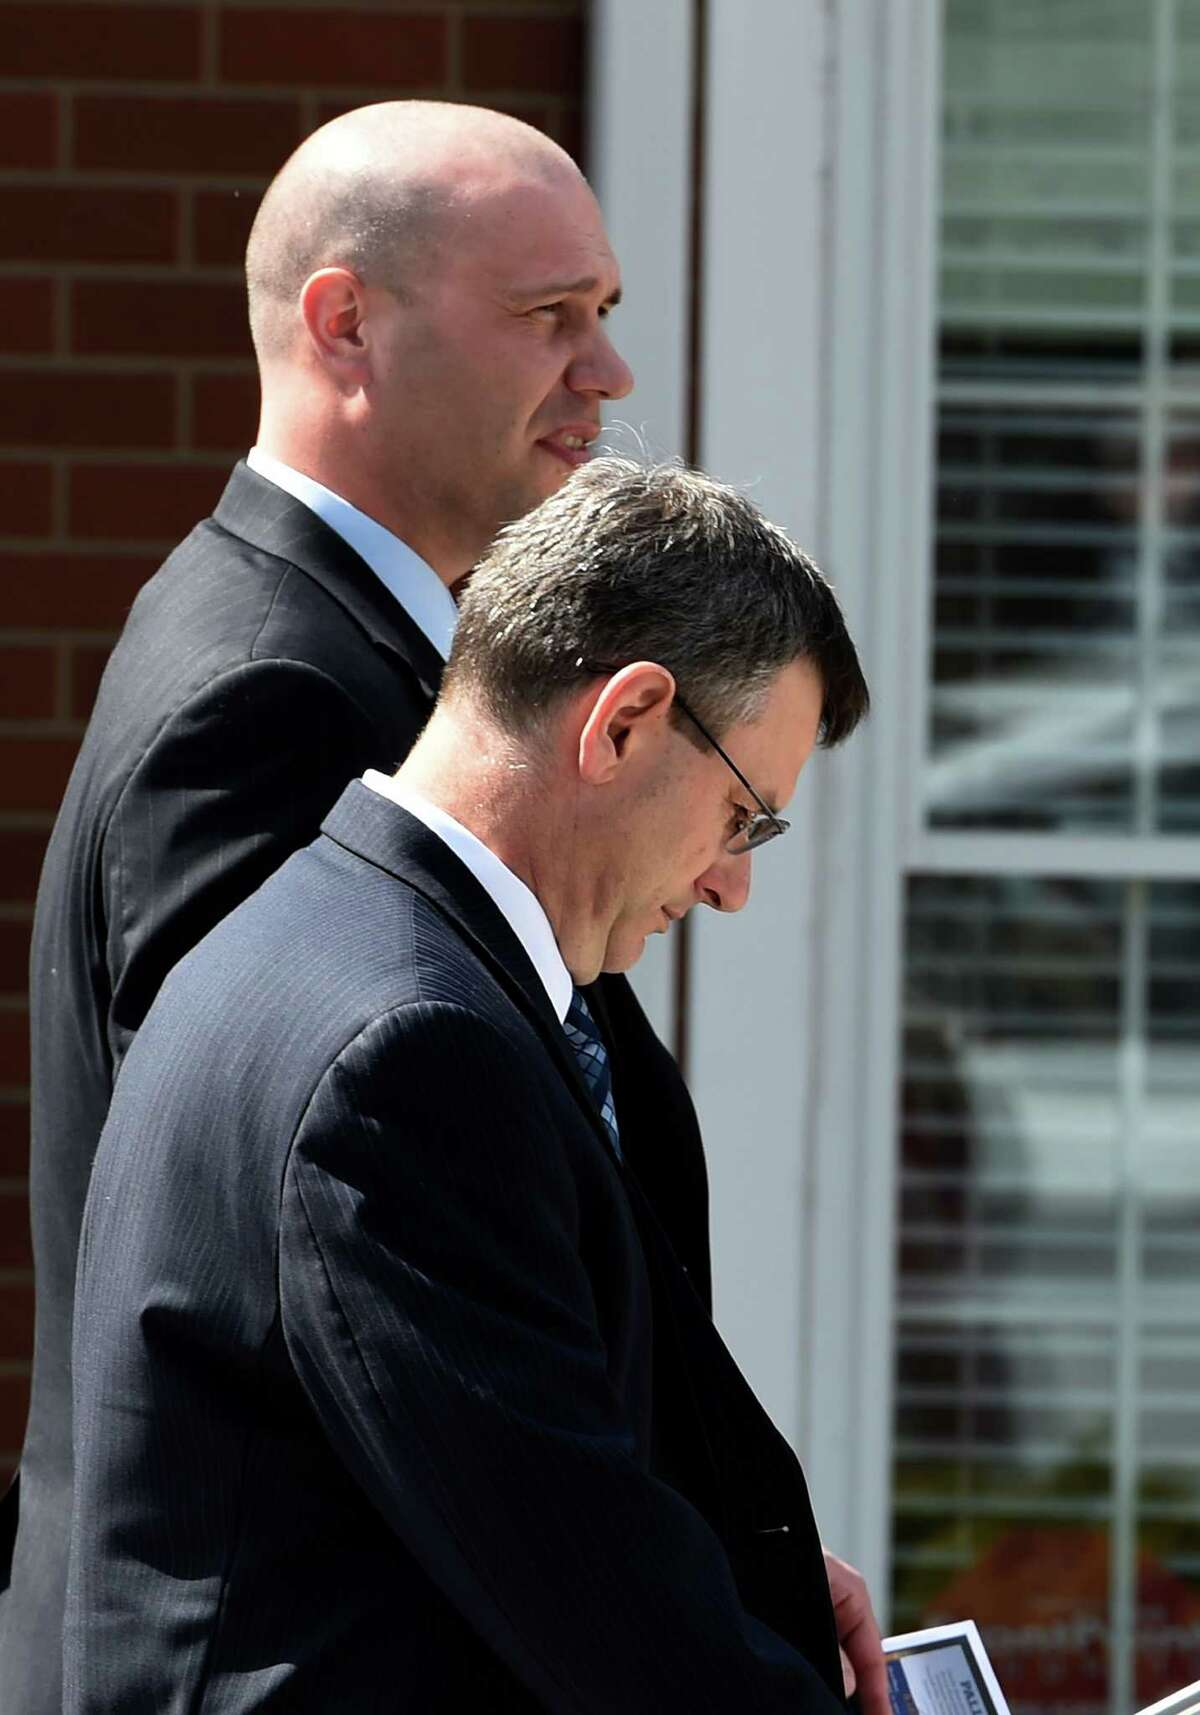 Acting Albany Police Chief Brendan Cox, foreground, leaves the Greater St. John's Church Monday morning April 13, 2015 in Albany, N.Y. after paying his respects to the family of Donald